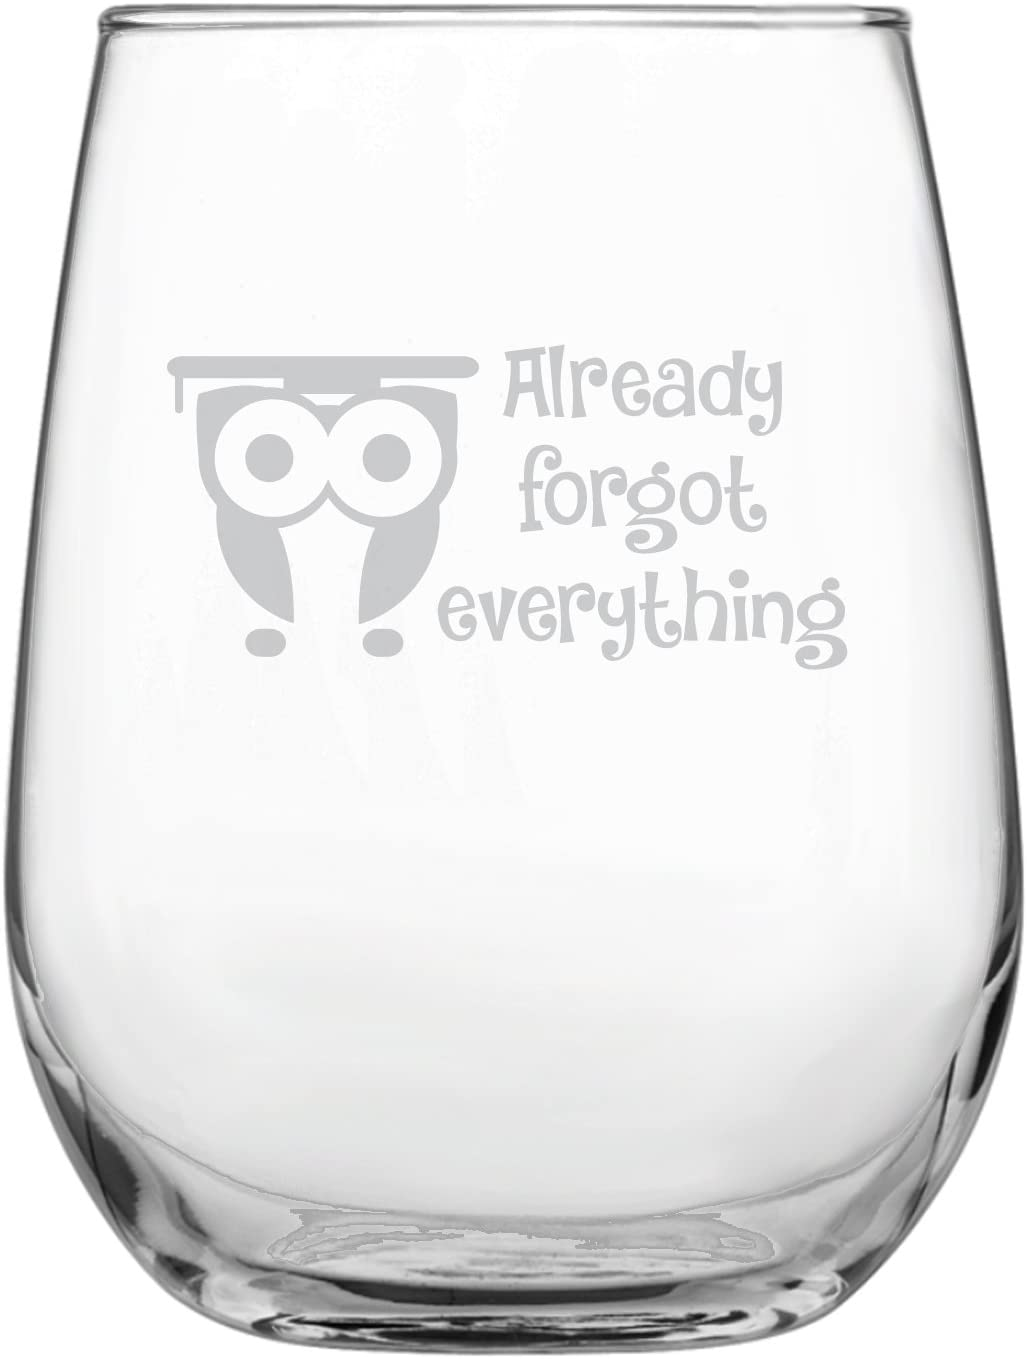 Funny Owl Graduation Stemless Wine Glass | Graduate | University | College | Present |by Laser Etchpressions | Already Forgot Everything